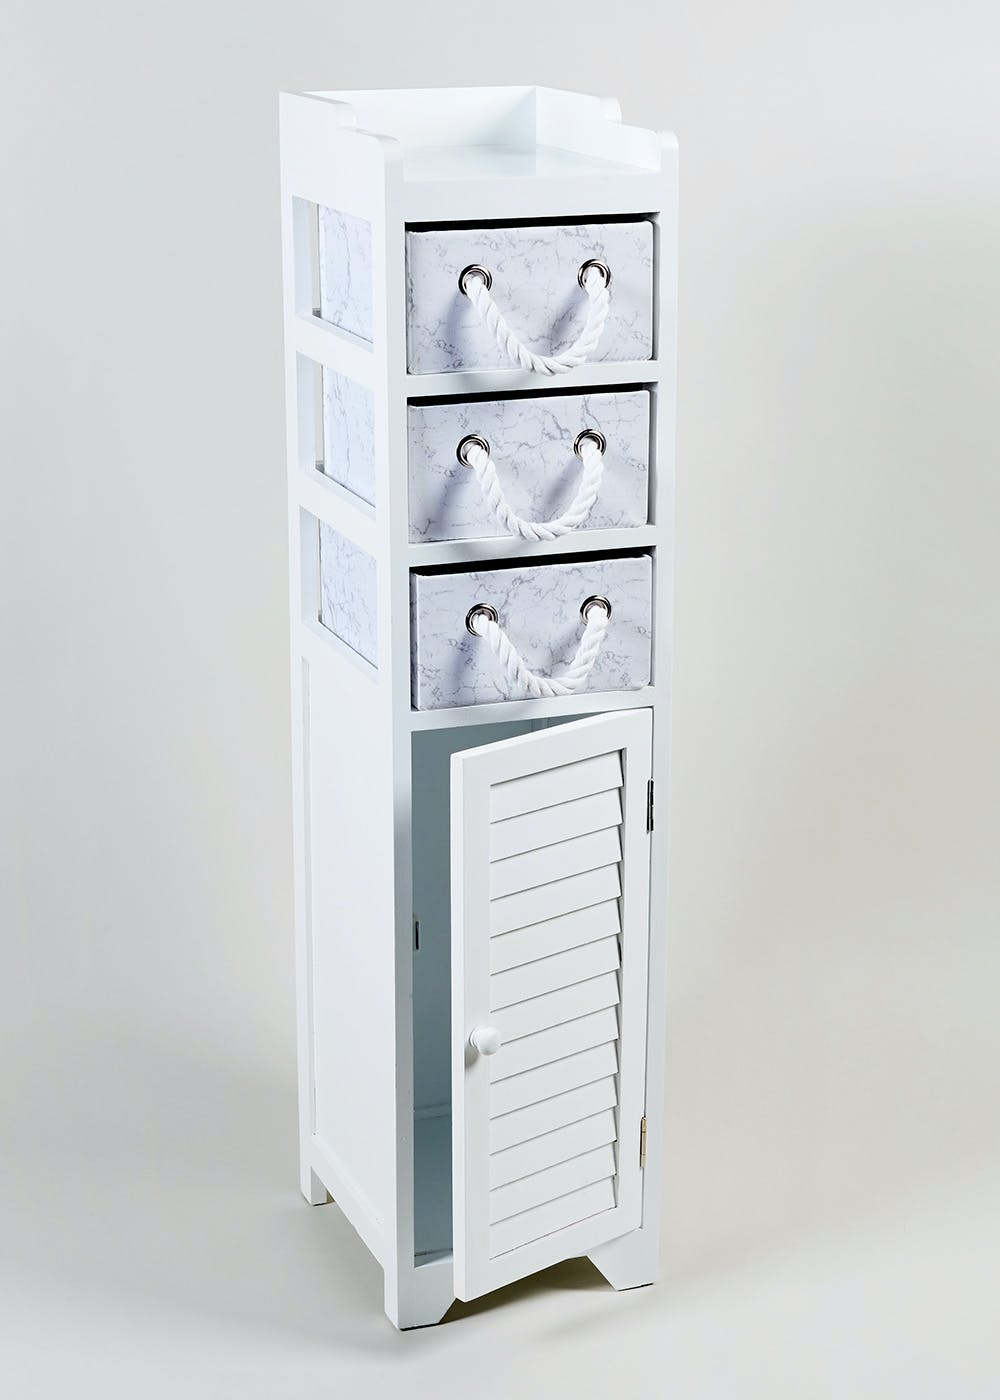 Marble Effect Wooden Storage Tower 103cm X 29cm 24cm